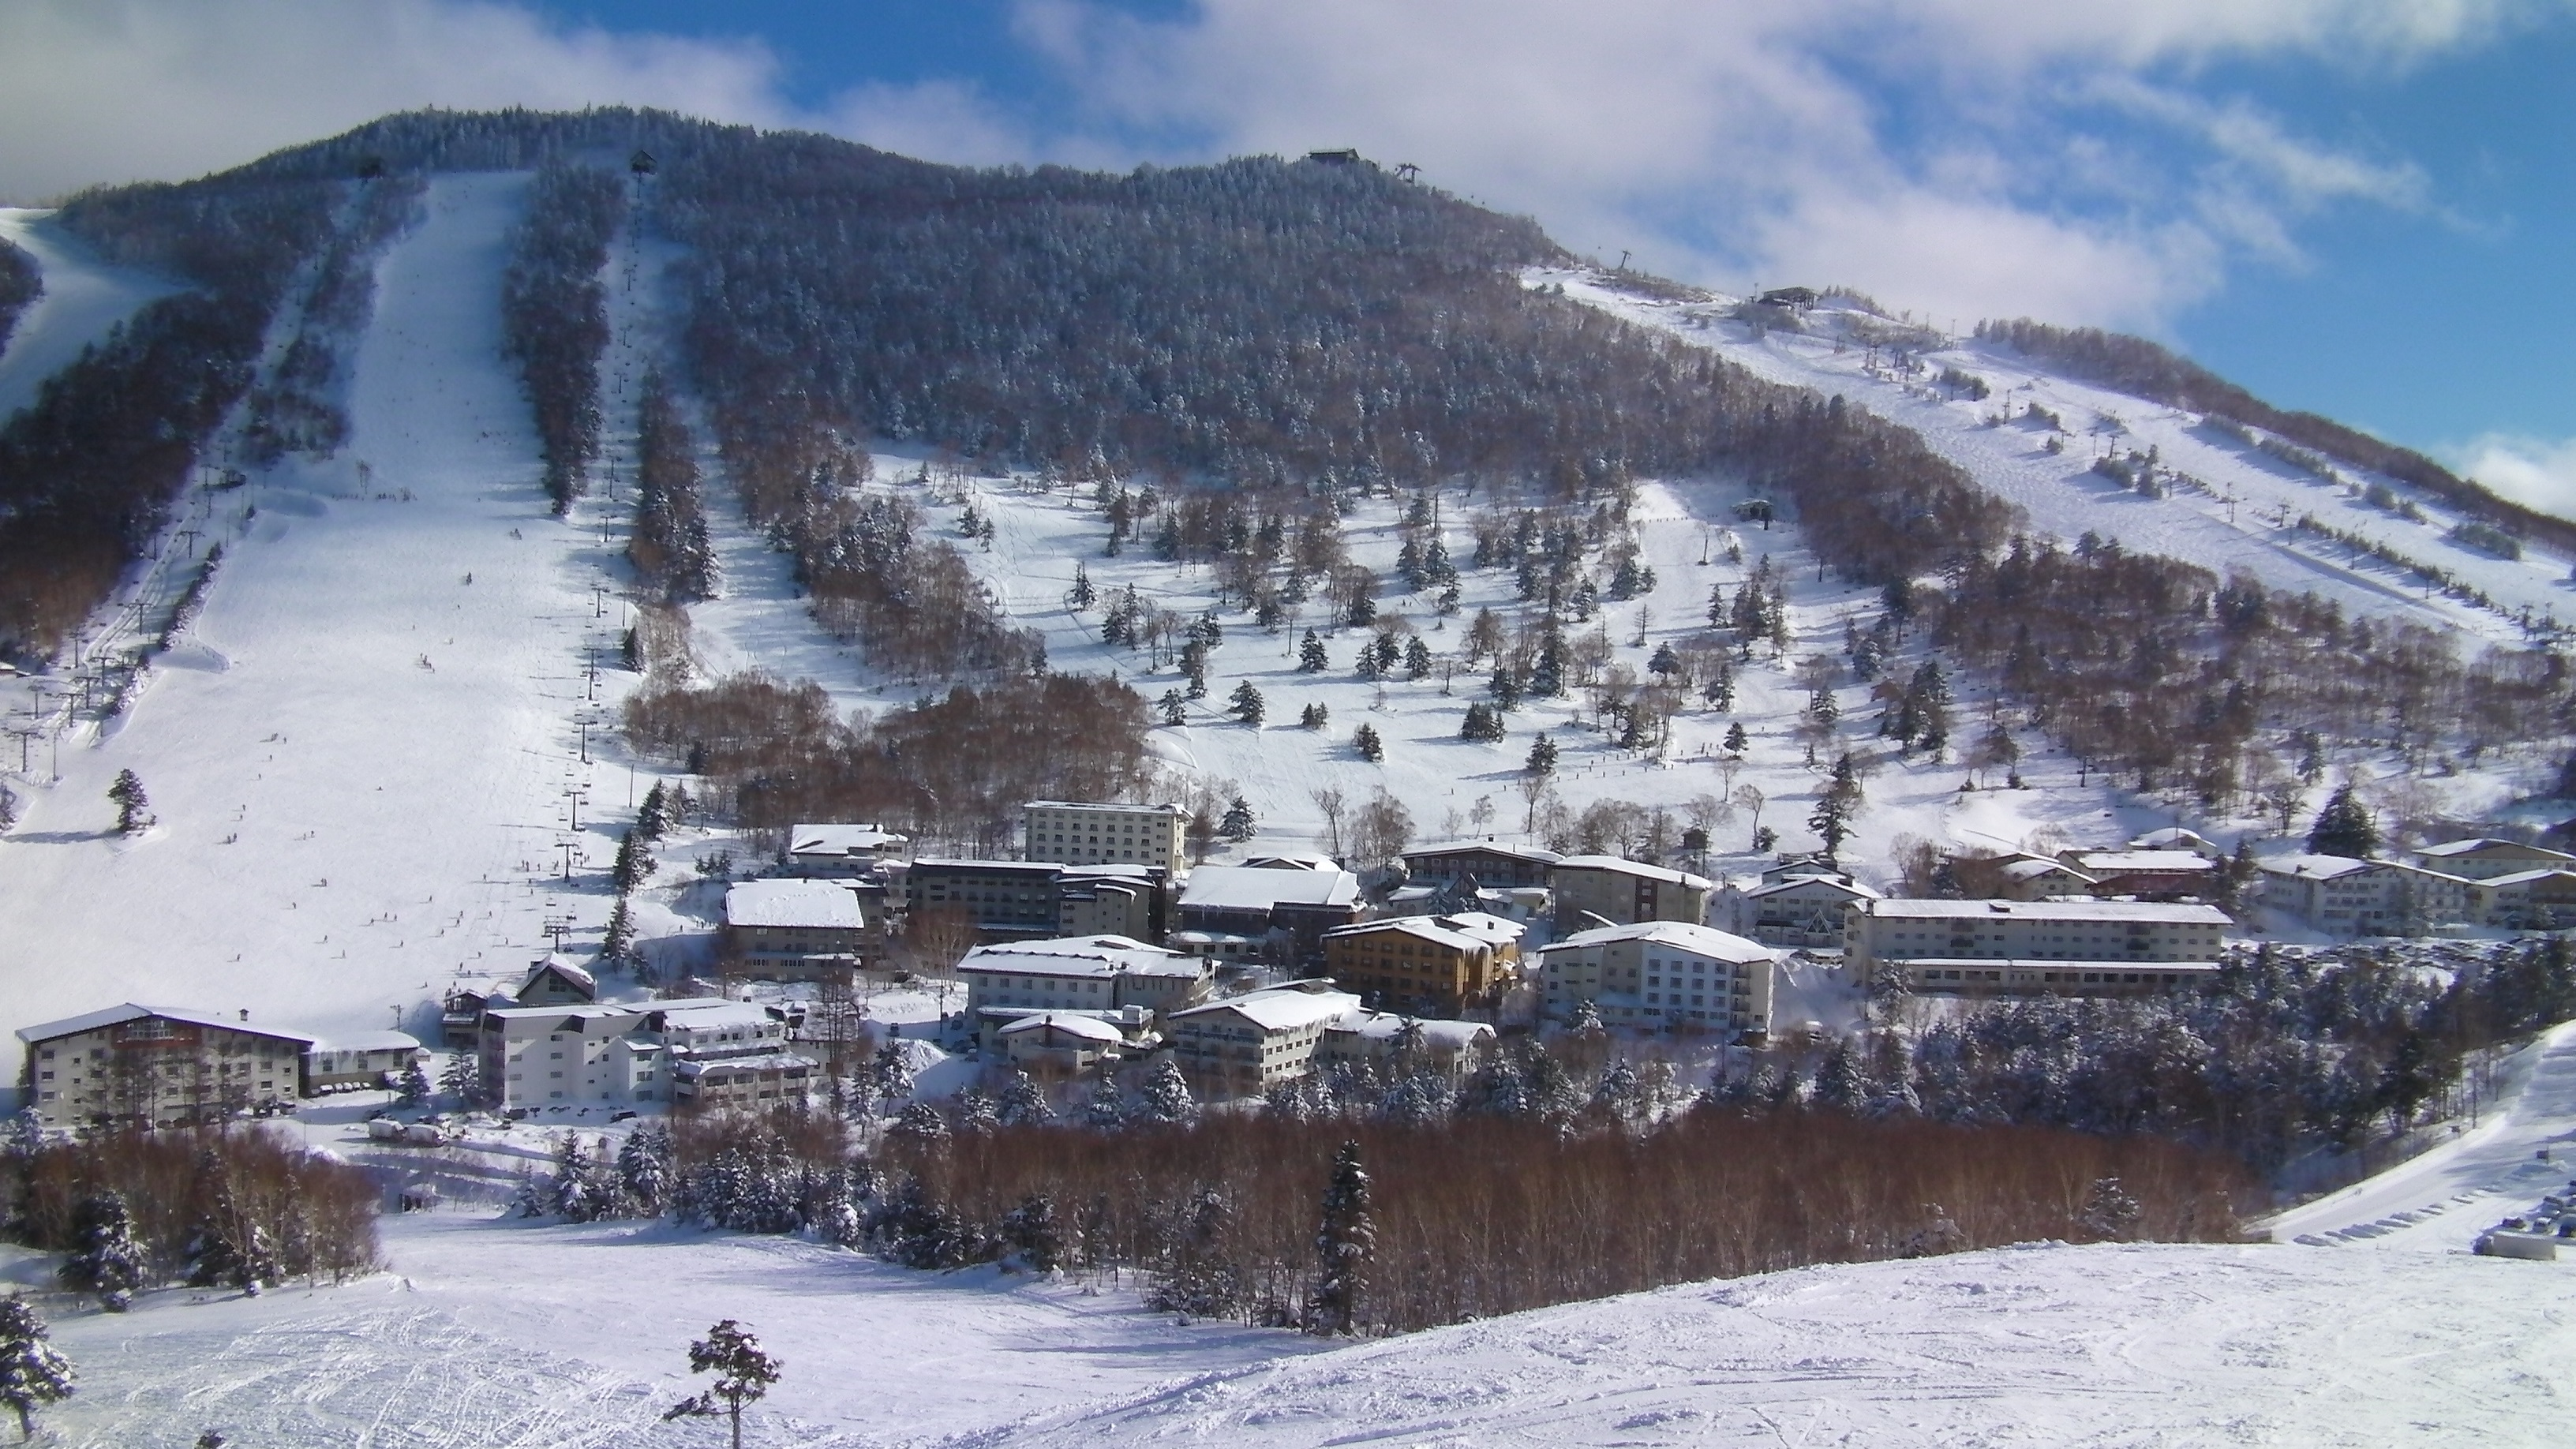 10 amazing ski resorts in asia to stay at for under $200/night